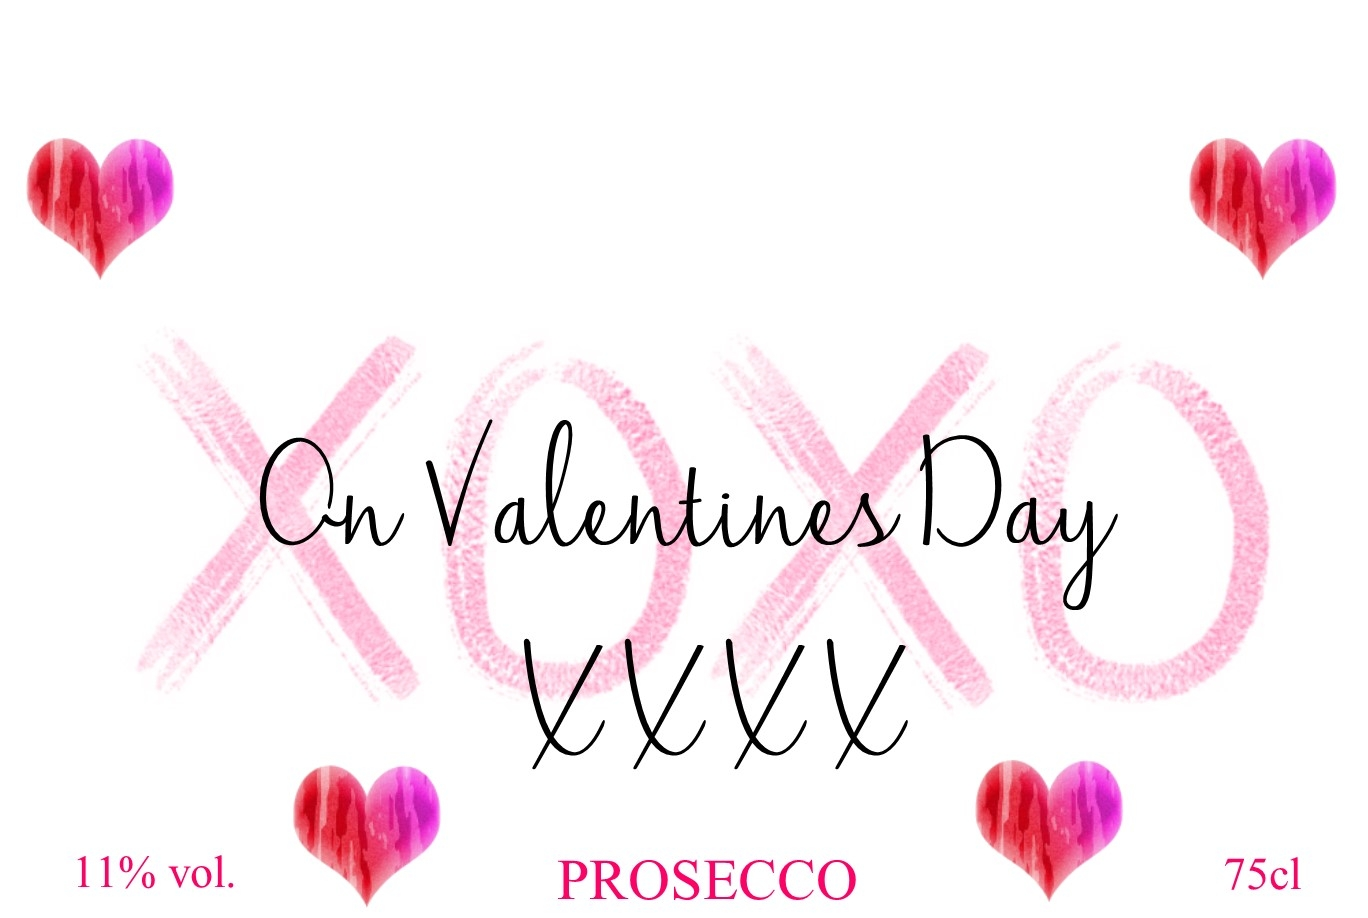 heart-emojipersonalised-prosecco-label-valentines